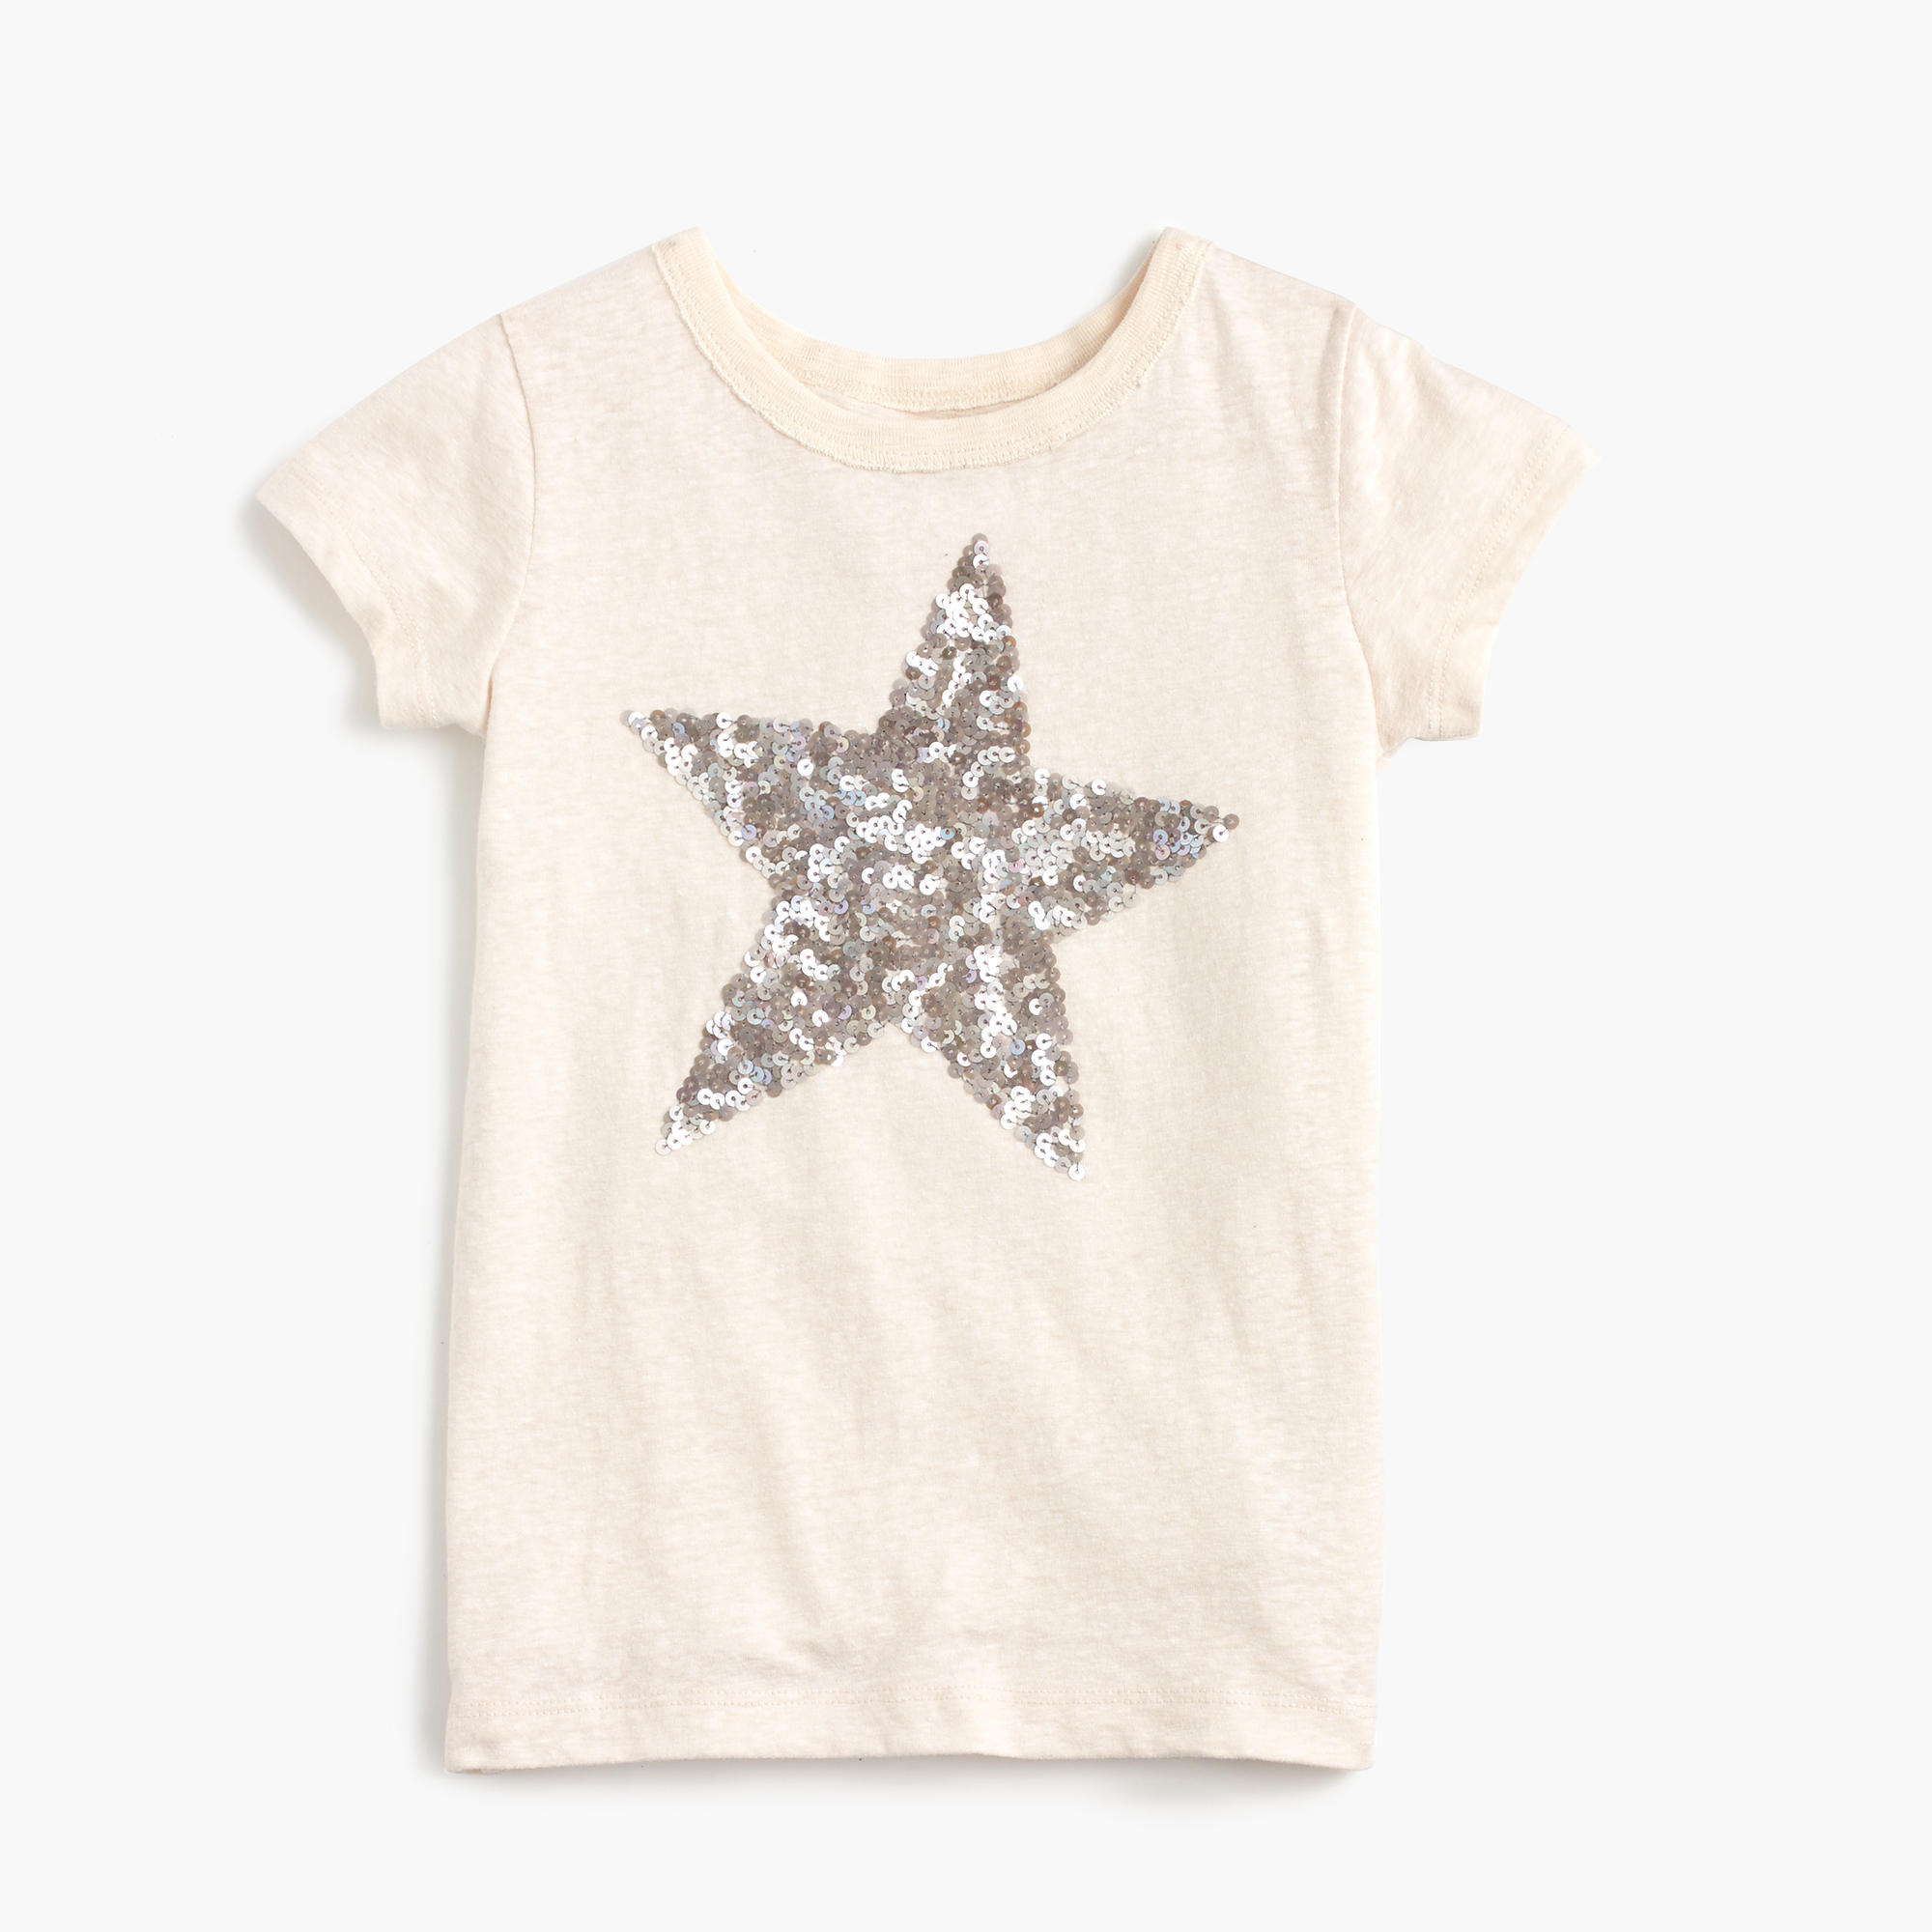 Girls 39 sequin star t shirt j crew for Girls sequin t shirt